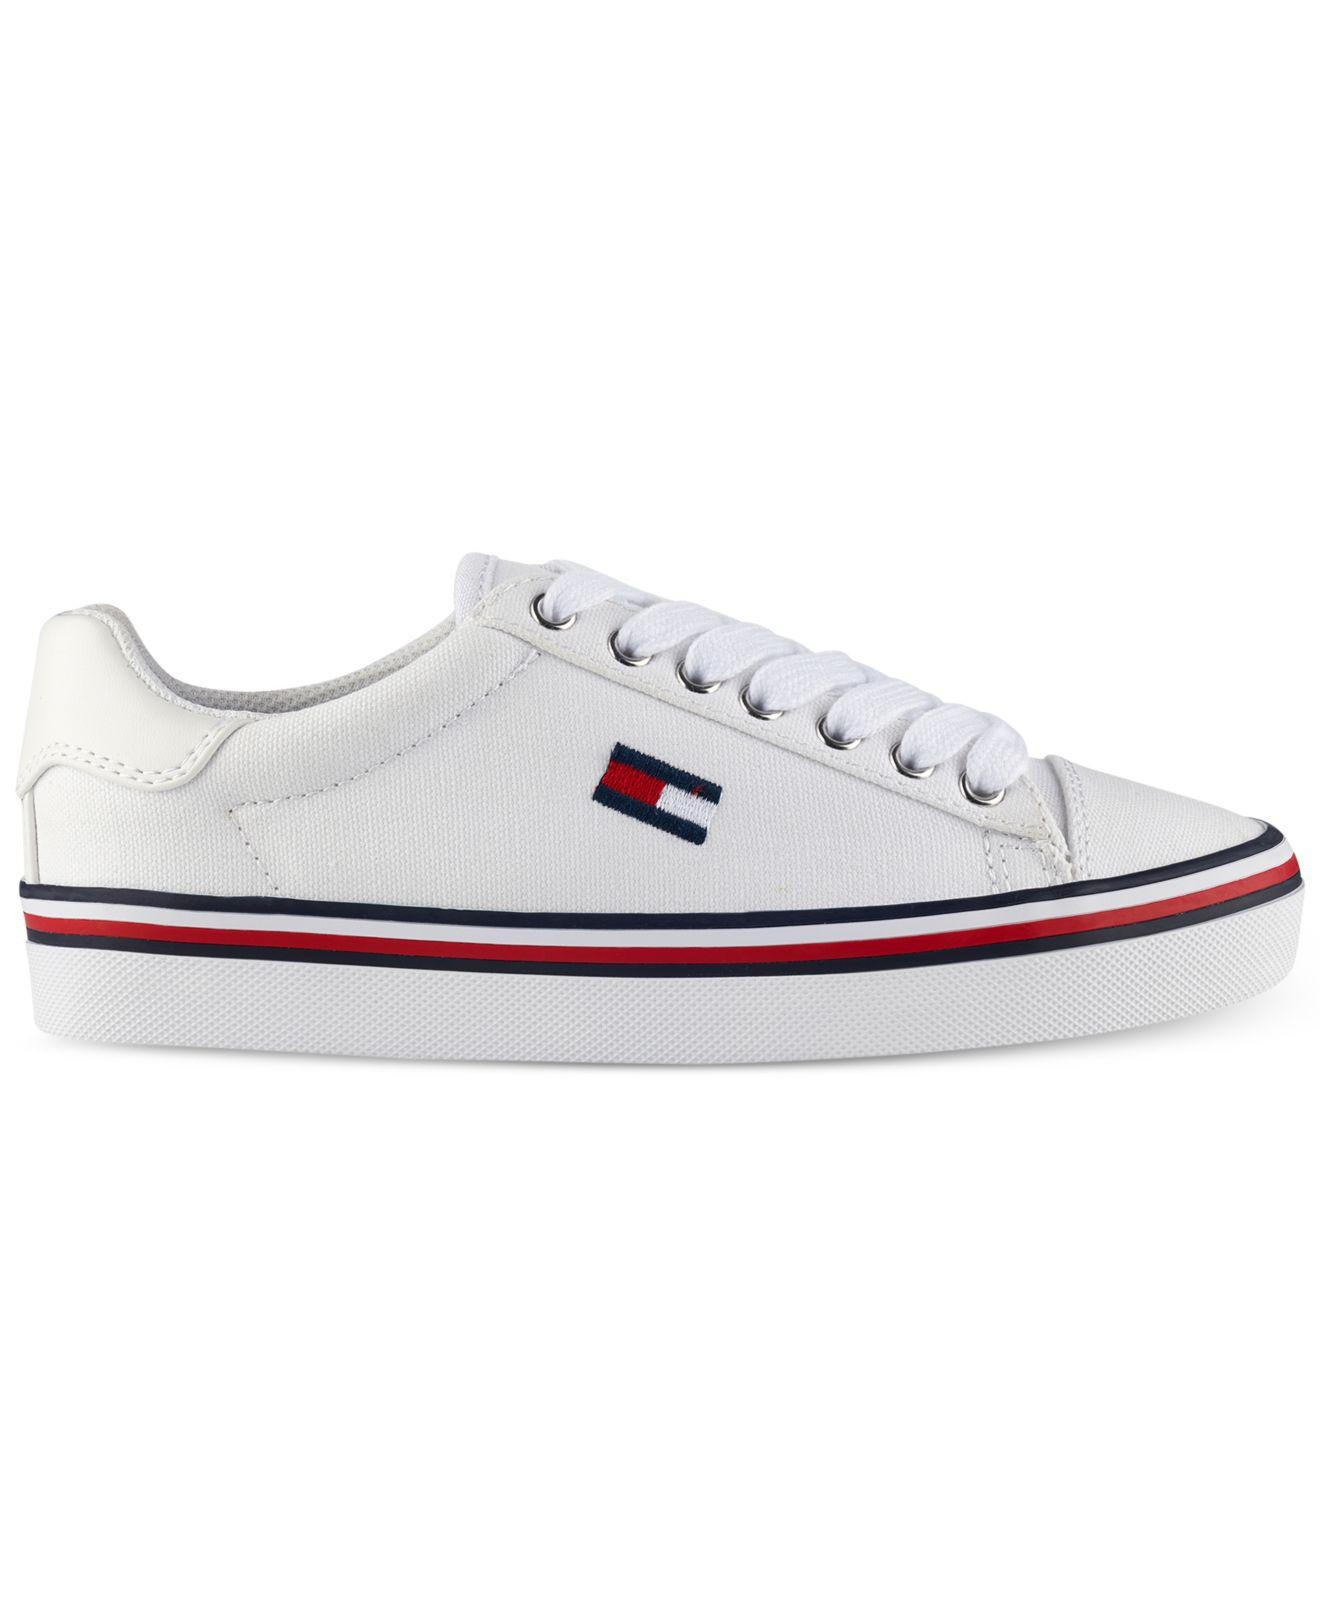 ff03fcf1d3d6b4 Lyst - Tommy Hilfiger Fressian Lace-up Sneakers in White